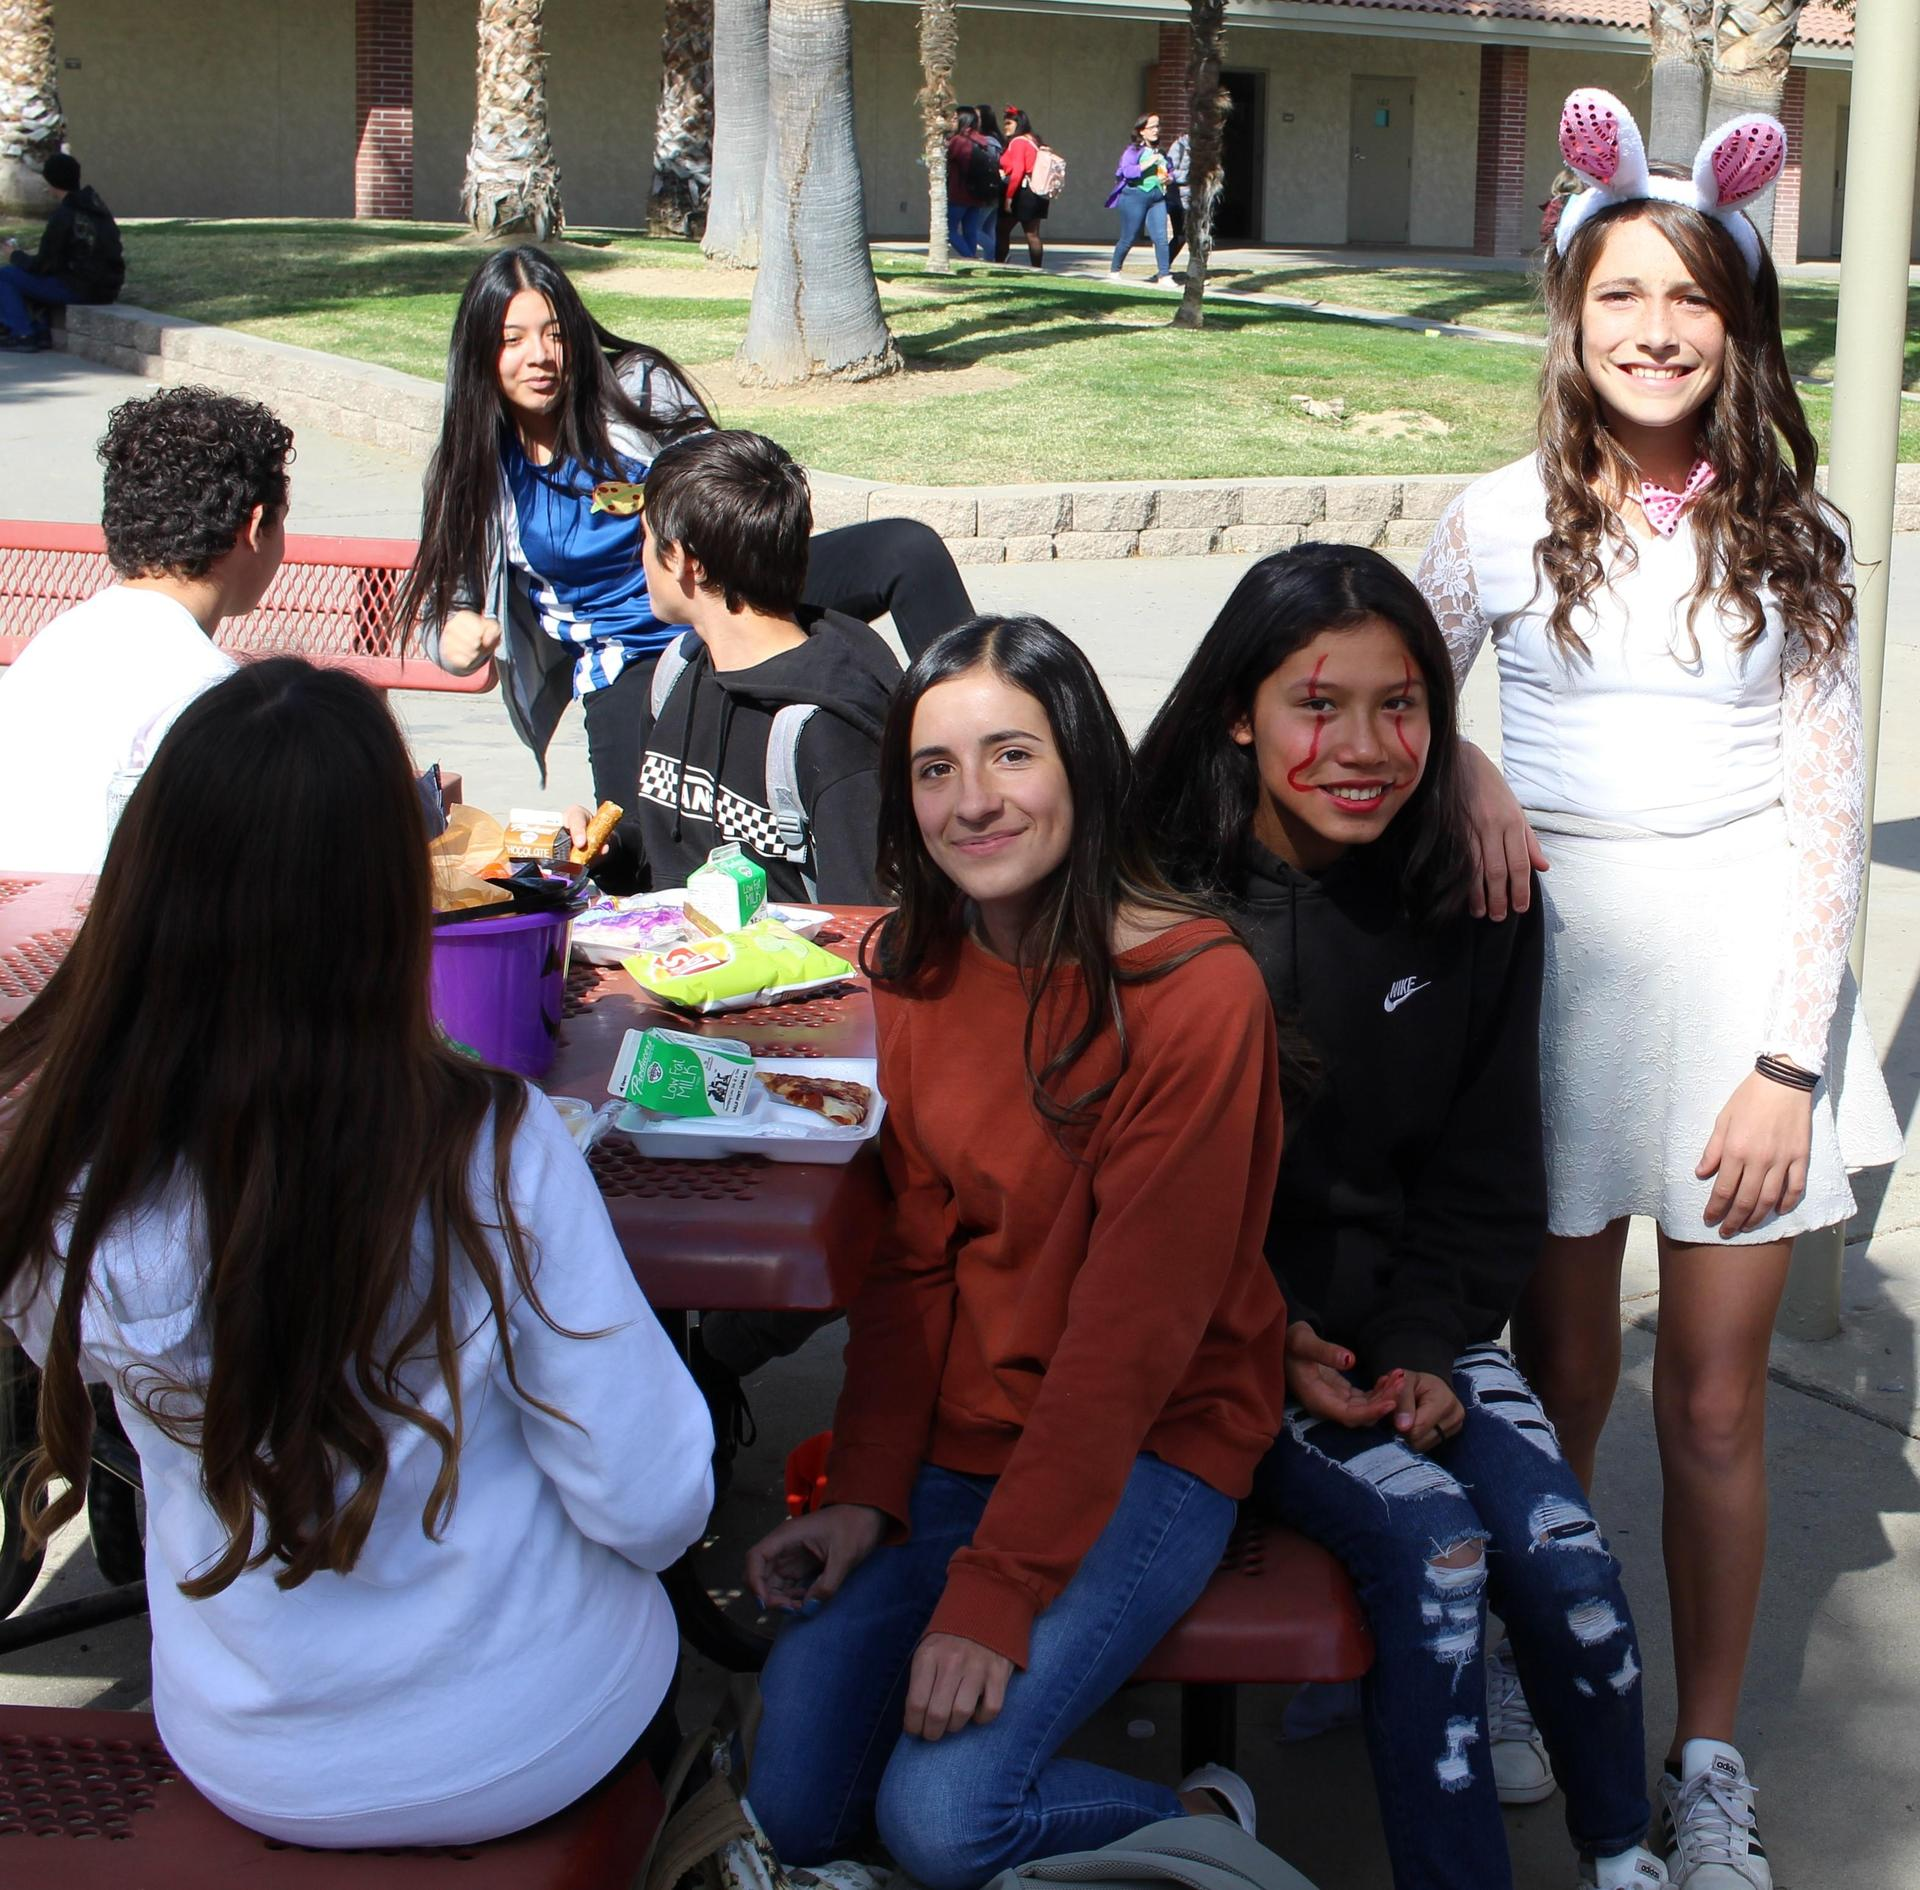 Karla Ceja, Alexis Capehart, Aaliyah Lopez, Maudry Groomes at lunch